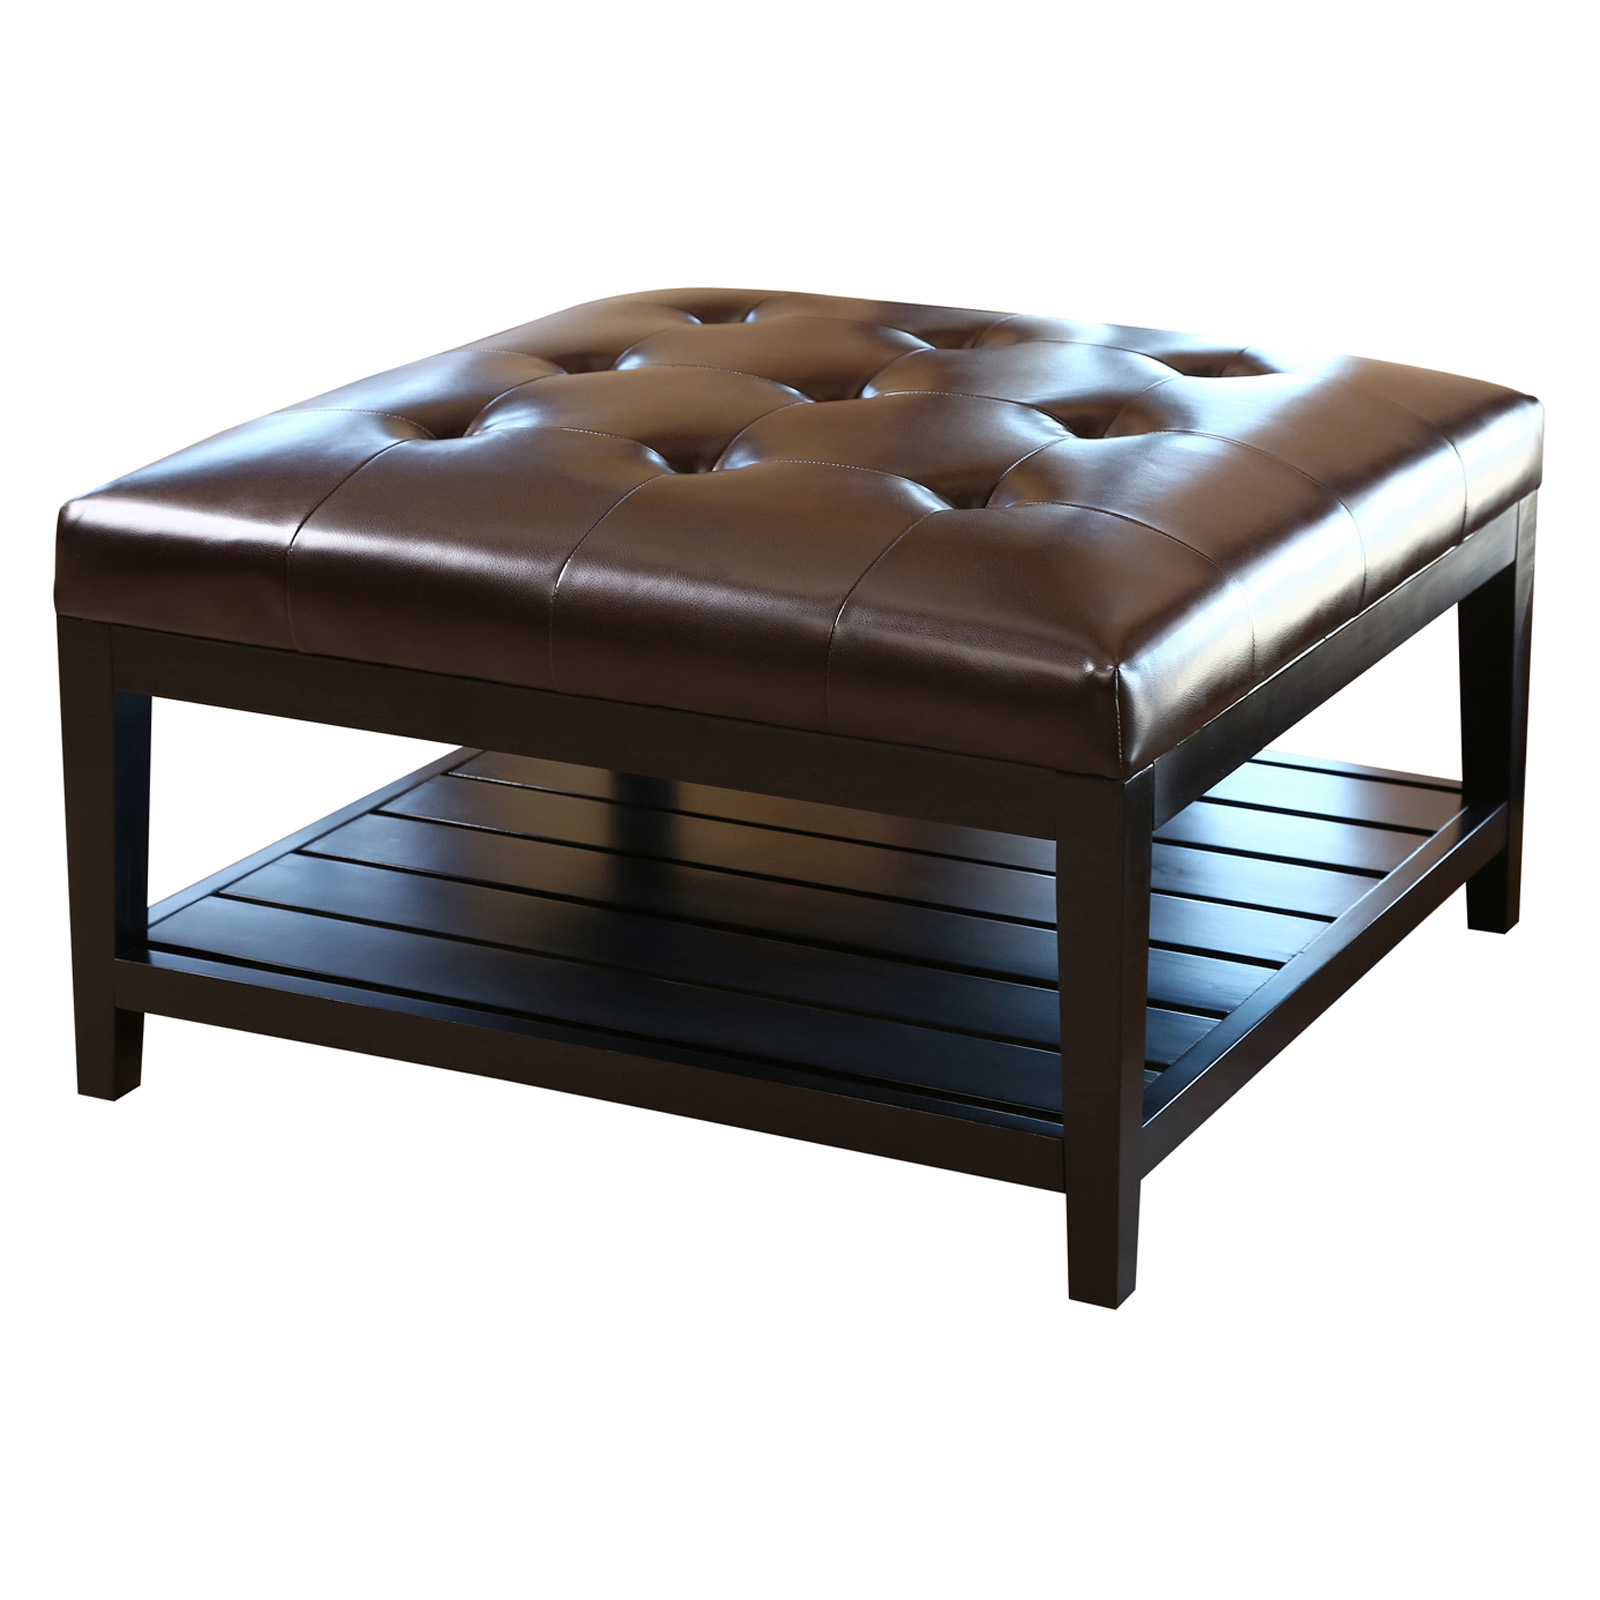 Abbyson living villagio tufted leather square coffee table ottoman dark brown ottomans at Leather tufted ottoman coffee table